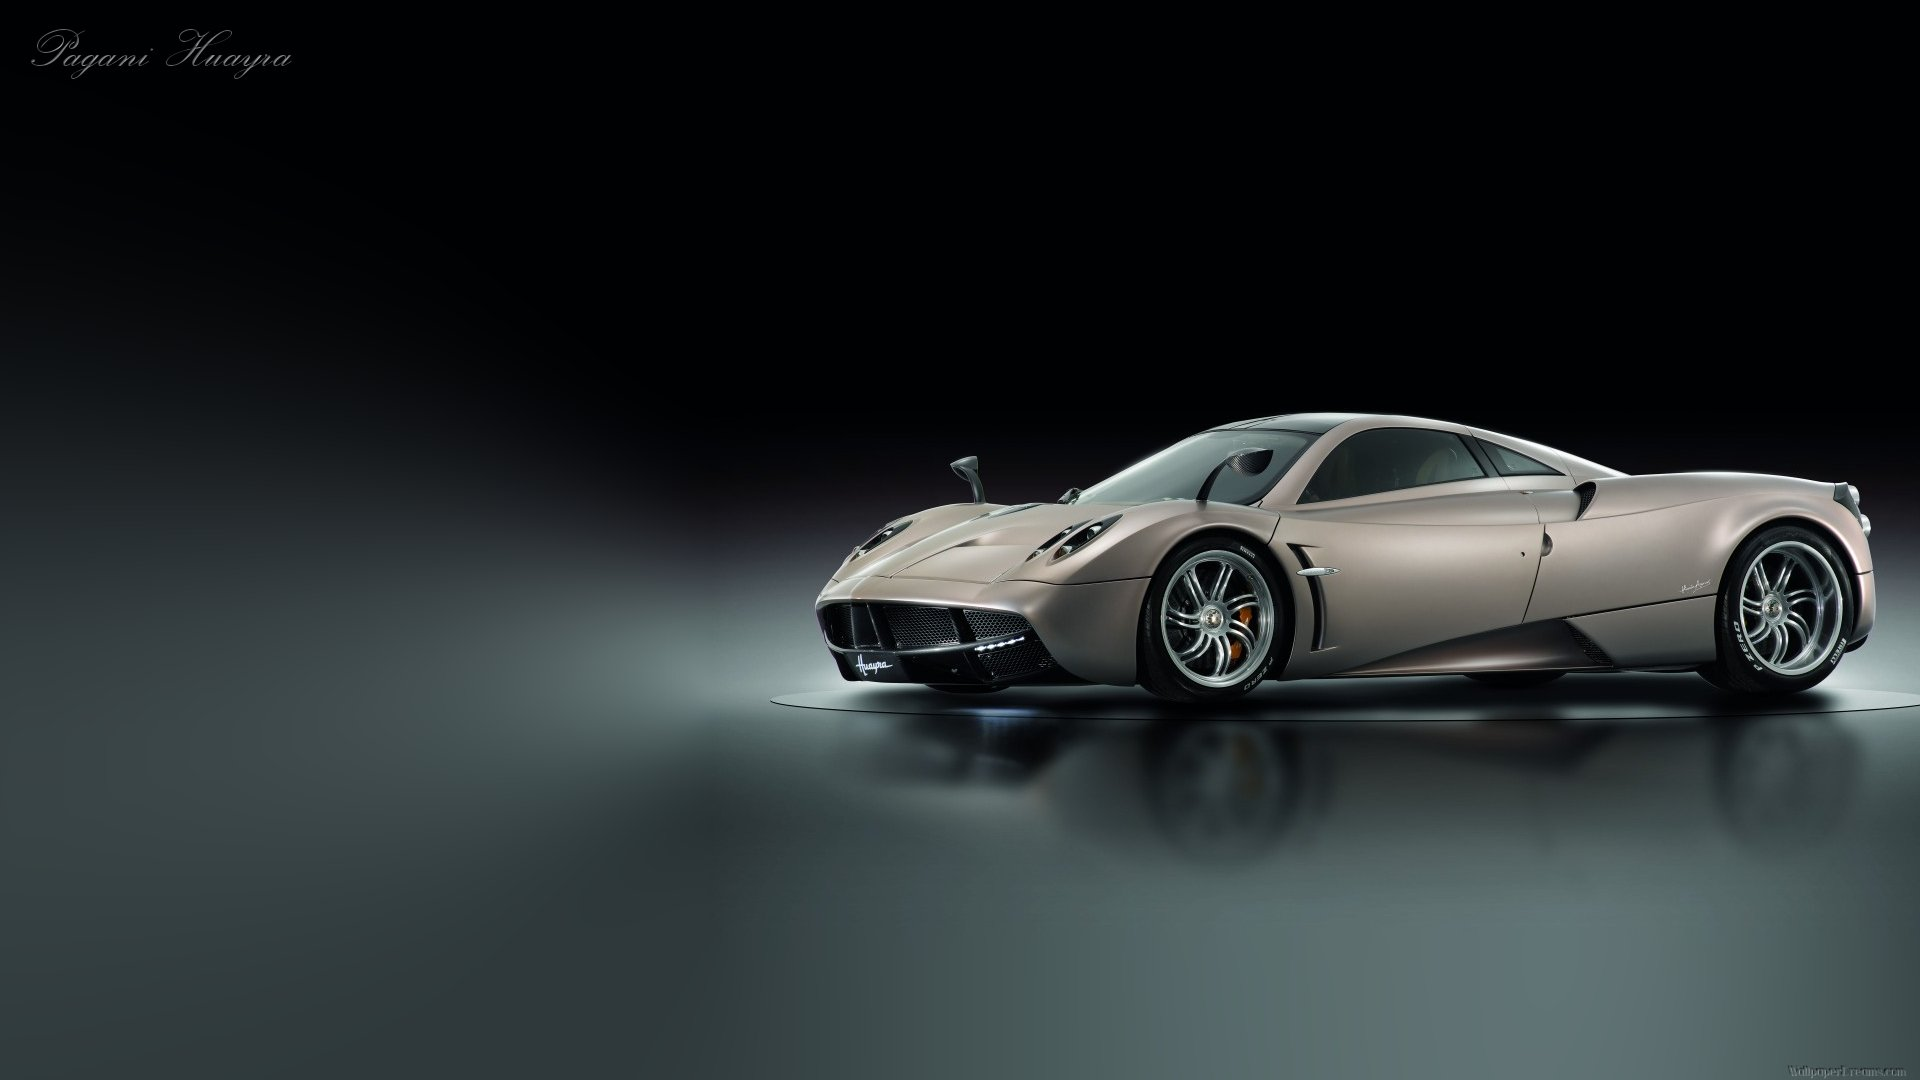 Pagani Huayra Wallpaper 1080p 1920x1080